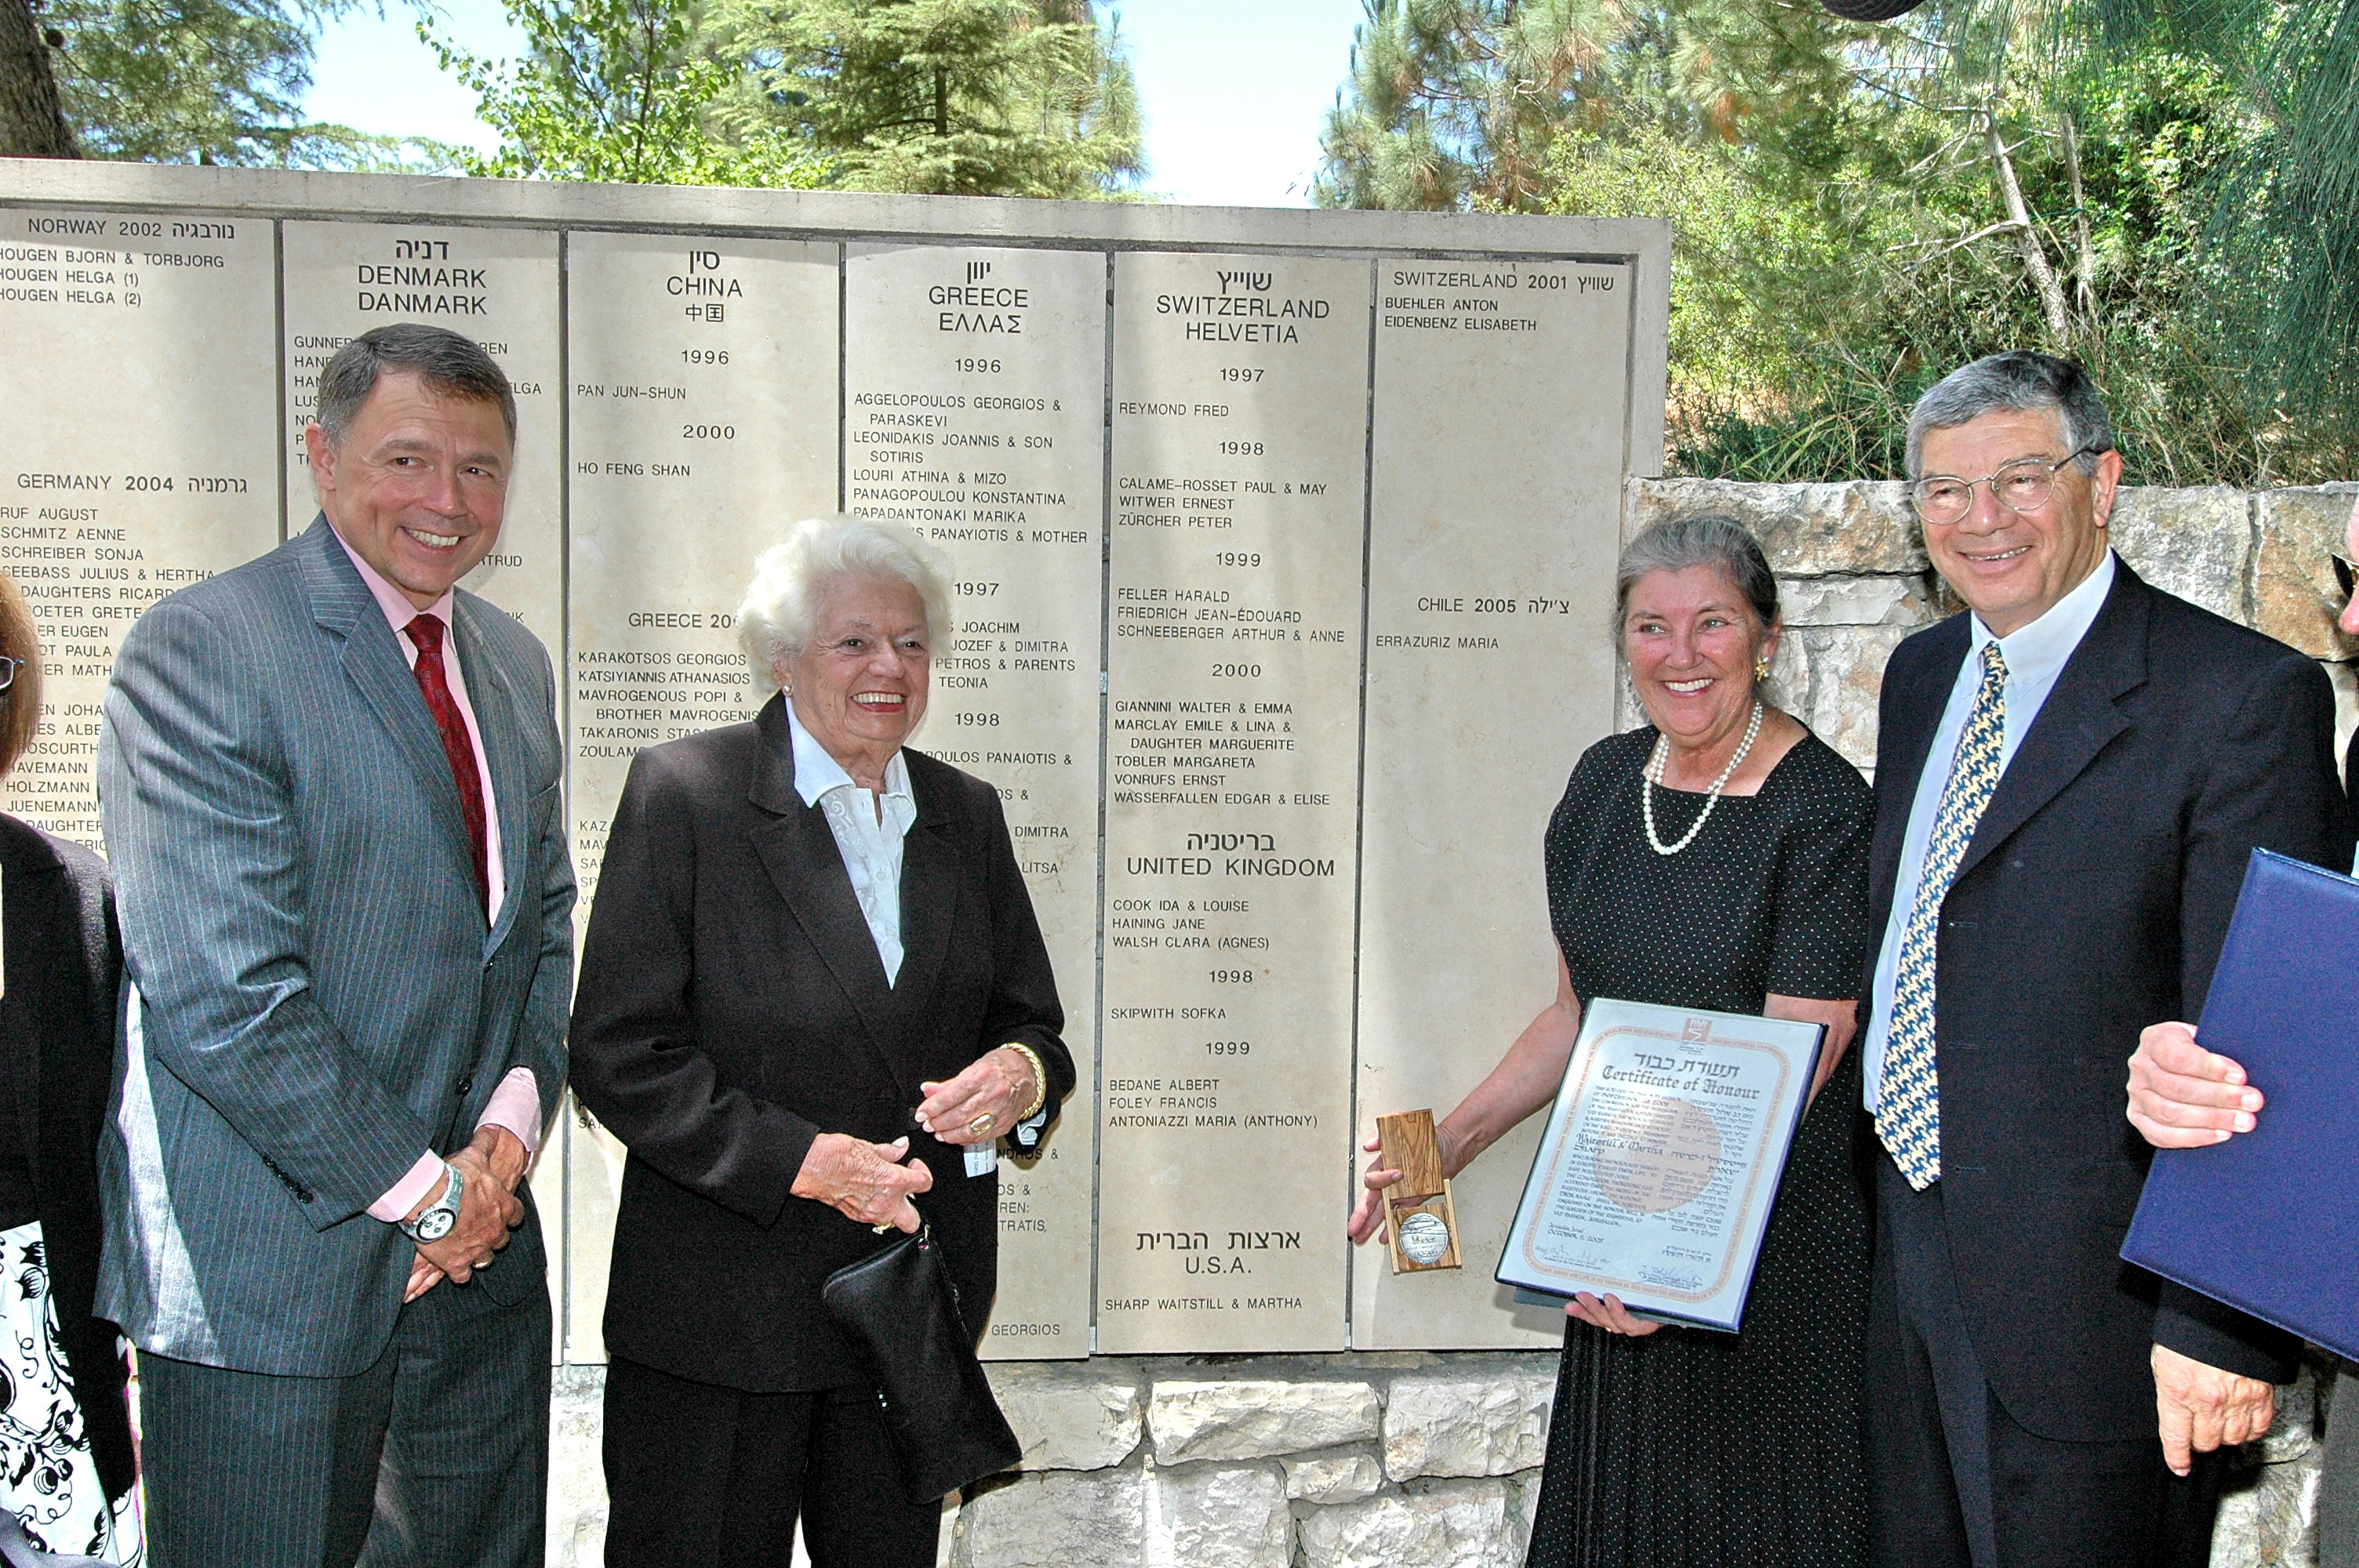 Ceremony in honor of the Sharp couple, Garden of the Righteous, Yad Vashem, 13 june 2006